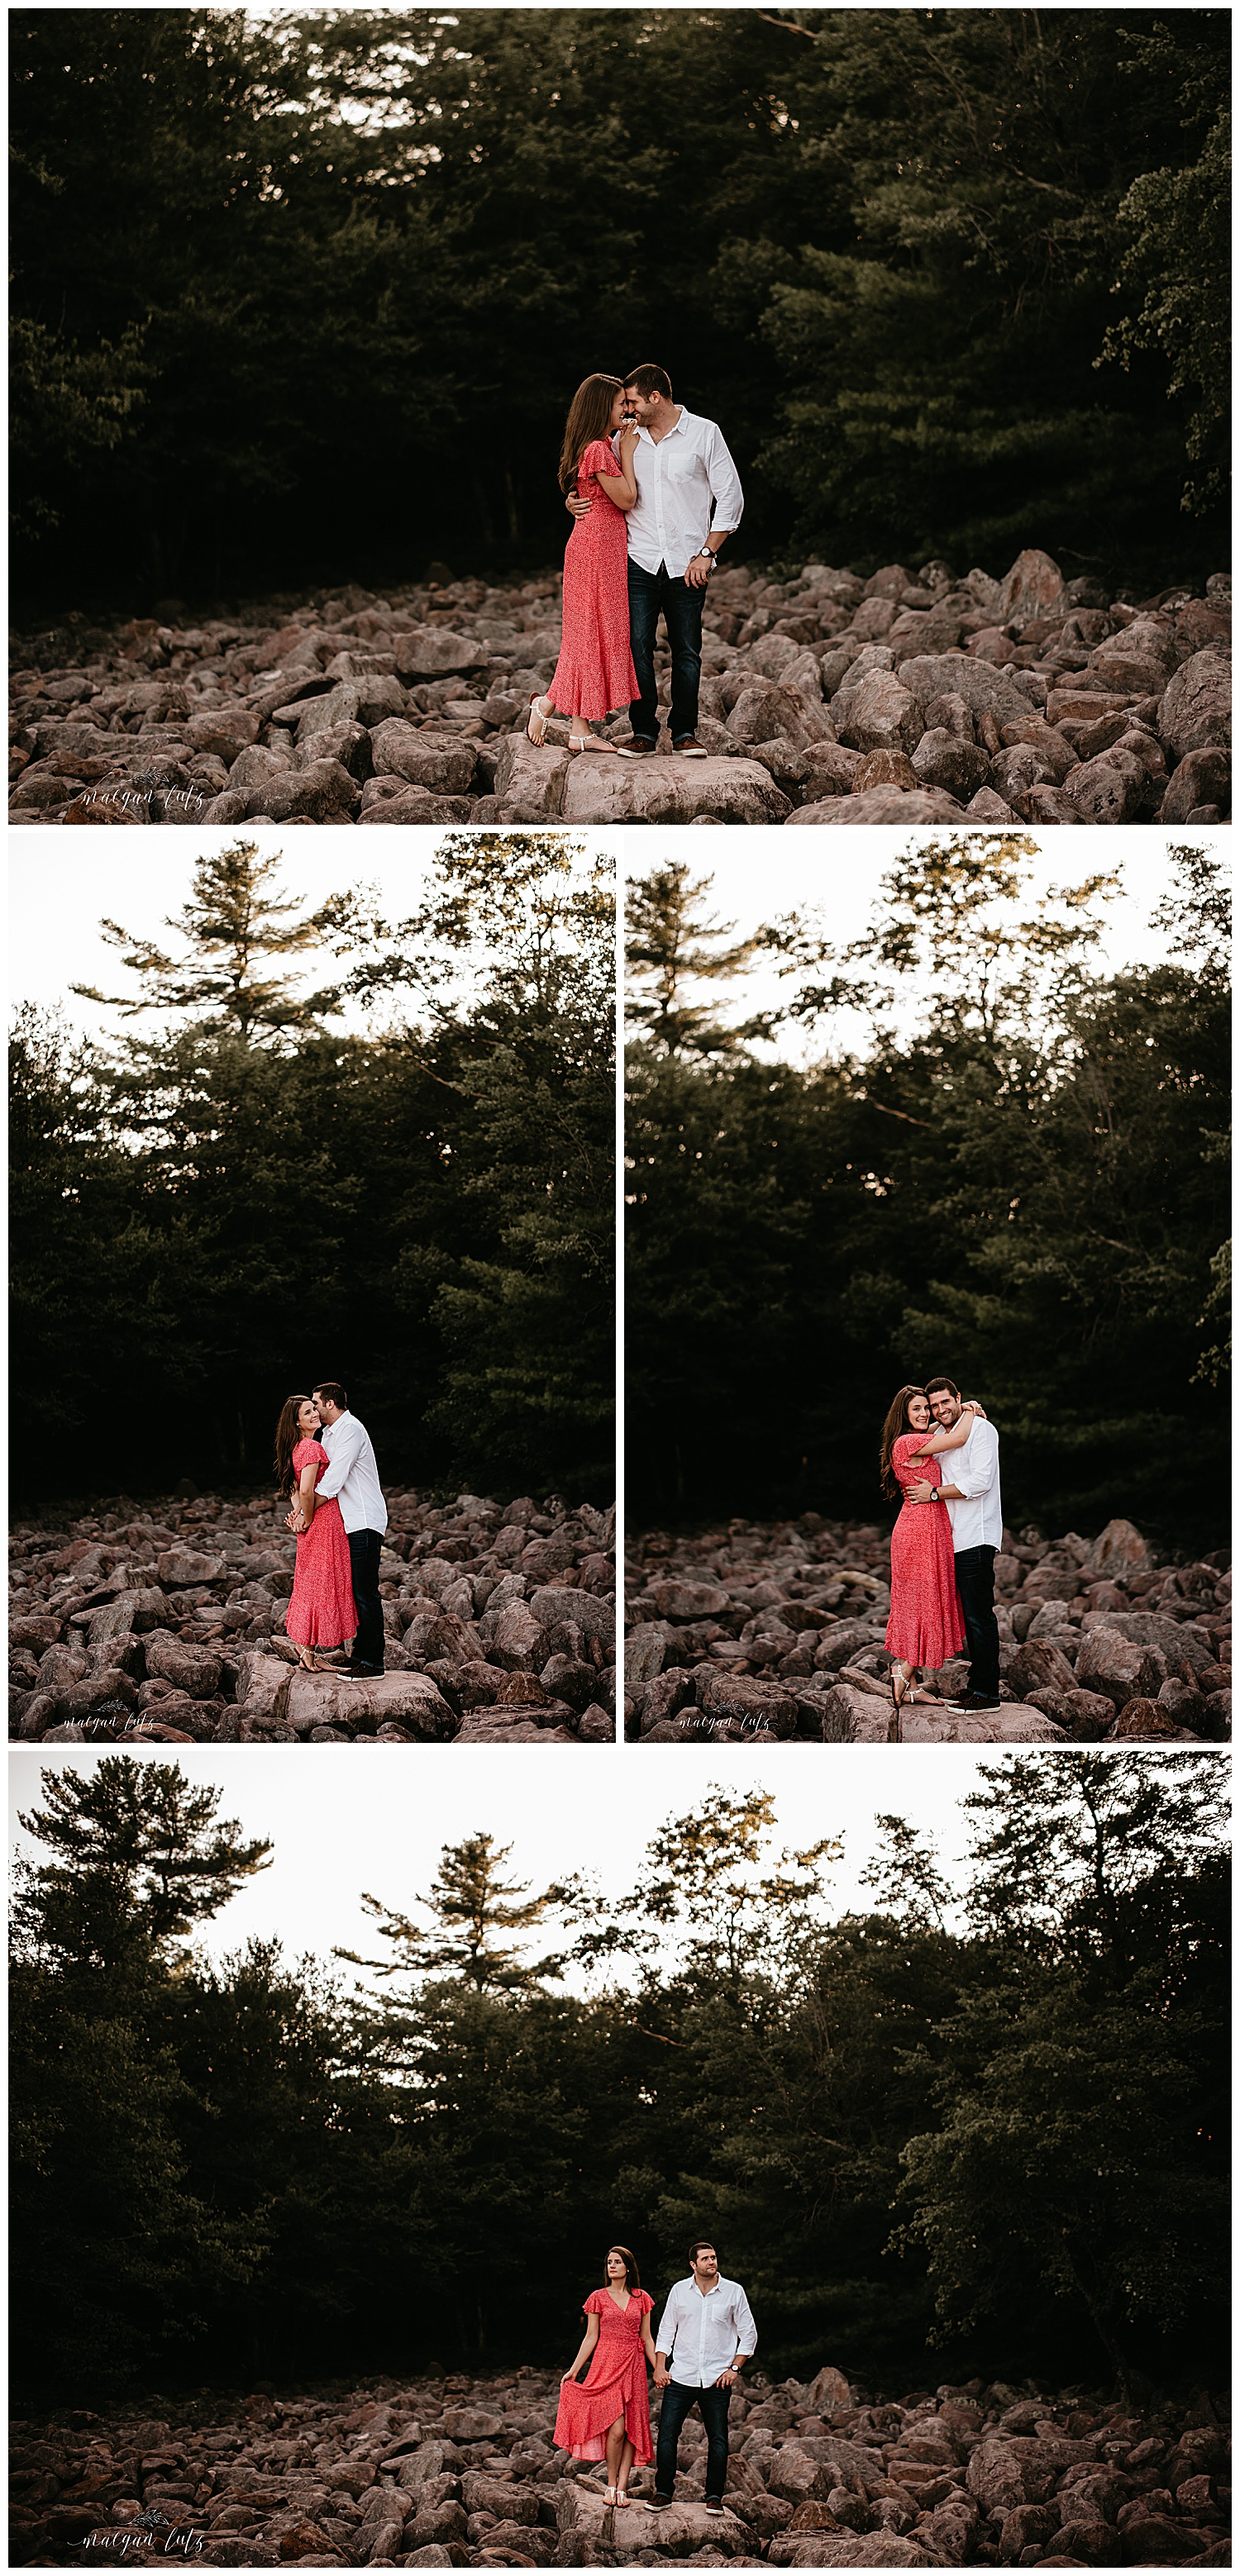 NEPA-Mount-Pocono-Lehigh-Valley-Wedding-Engagement-photographer-at-Hickory-Run-State-Park-Whitehaven-PA_0014.jpg